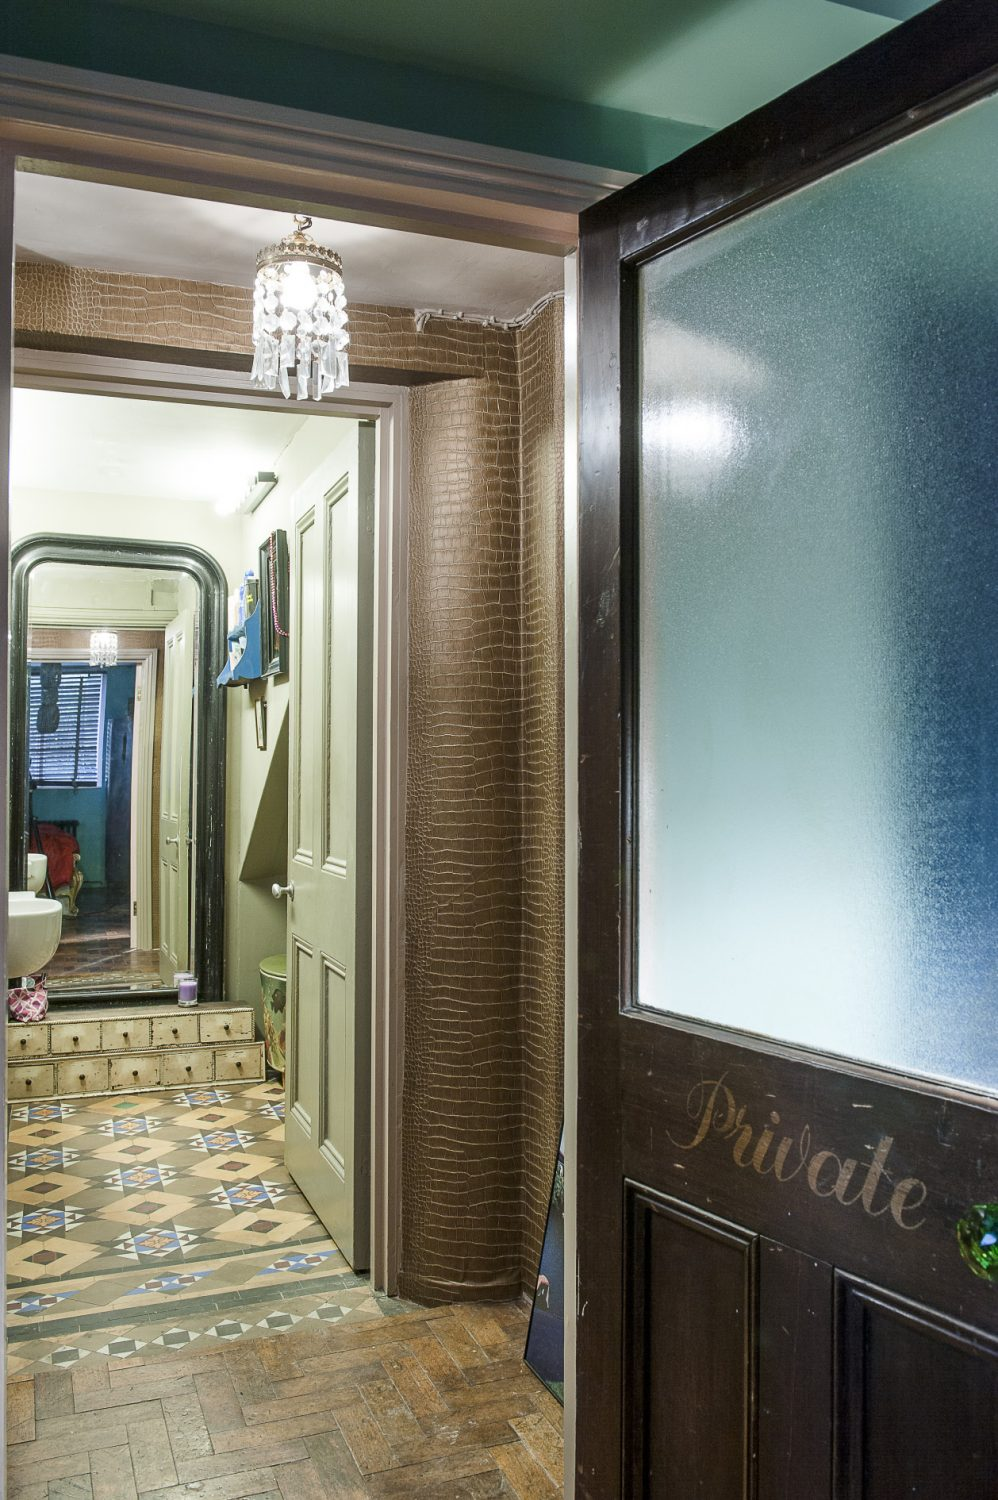 An old glass pub door with 'Private' etched on it, found on eBay, leads into the bedroom